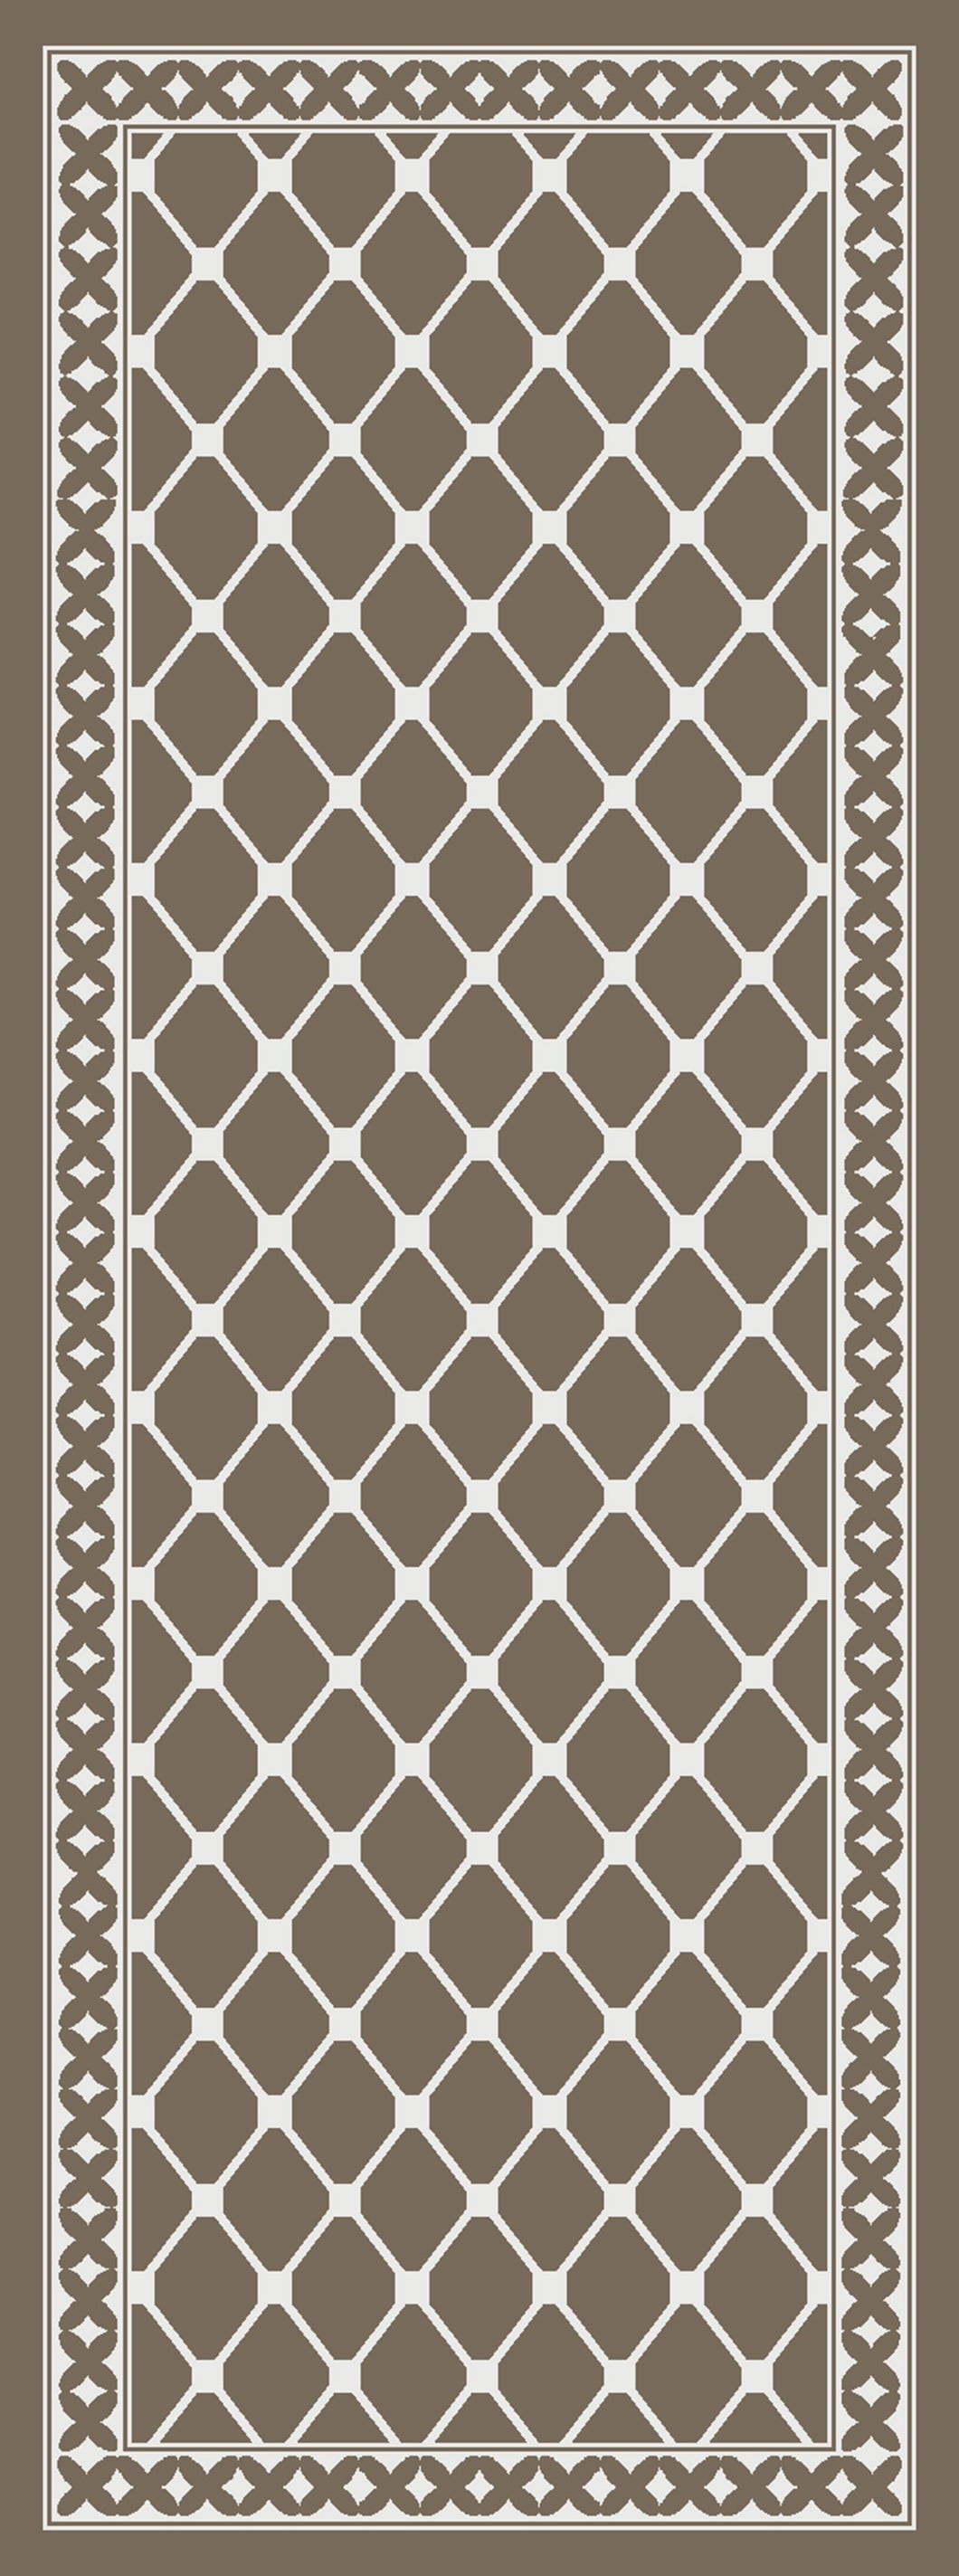 DM40 Ozzie Hallway Runner Brown 67cm x 180cm